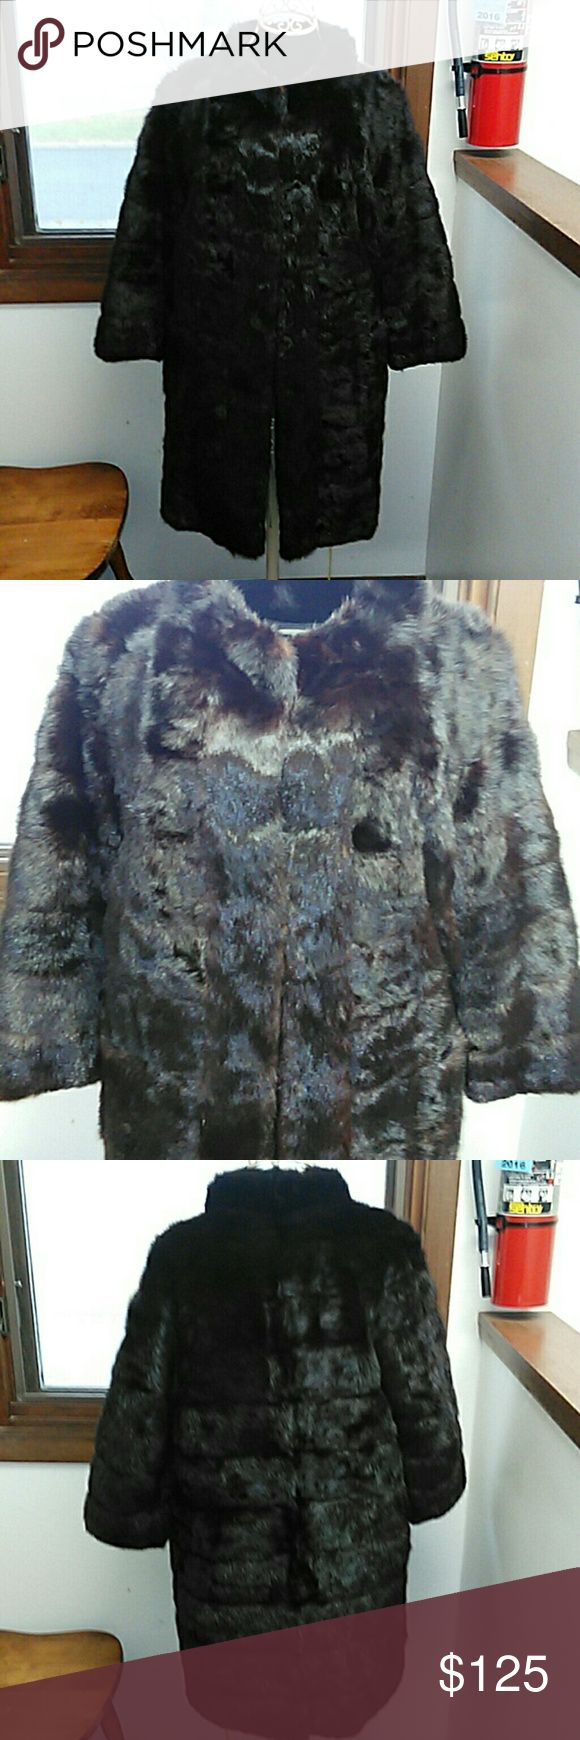 "Russian sable female mink fur skin coat s Ladies beautiful like new beautifully lined Russian sable horizontal pure female mink skins fur so soft parked pelts newer coat 16"" shoulders 19"" chest across 19"" sleeves petite m small I would guess furrier made lovely classy sassy fur for the holidays or gift giving.. My price is smashing compared to others of this magnitude. Guaranteed to be excited with your purchase...I print and ship same day so you get it fast I'd appreciate the same courtesy…"